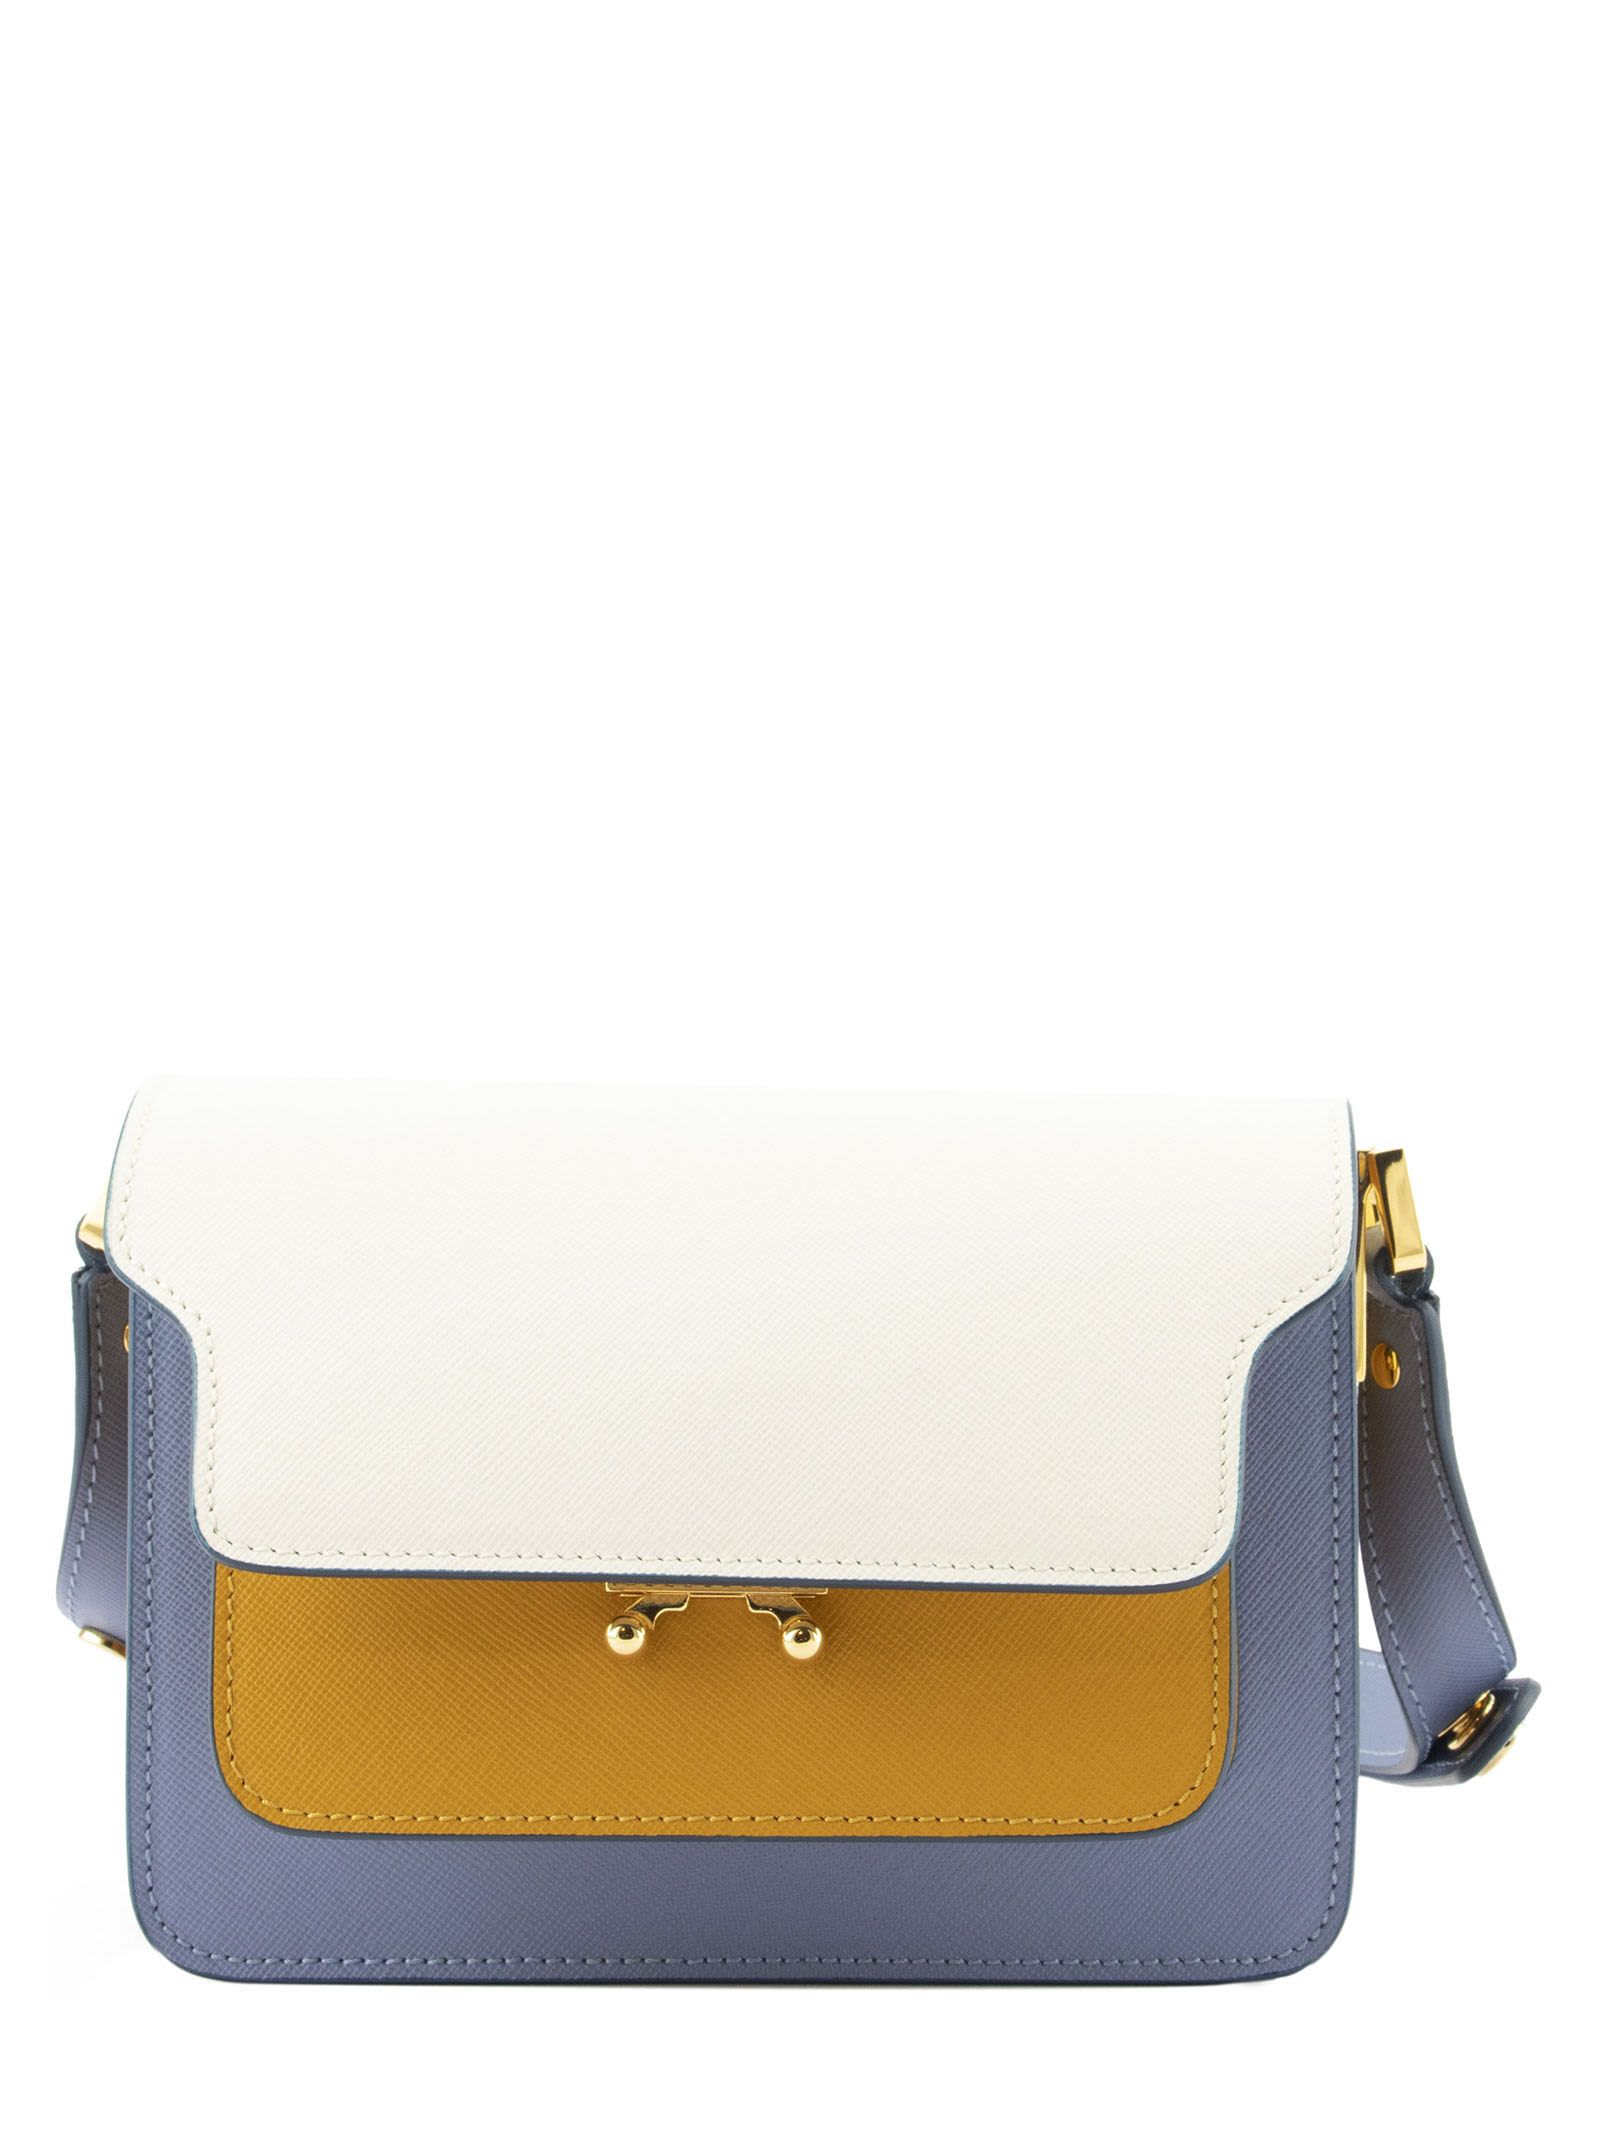 Marni Pants TRUNK MINIBAG IN SAFFIANO LEATHER NATUR WHITE YELLOW AND PALE BLUE